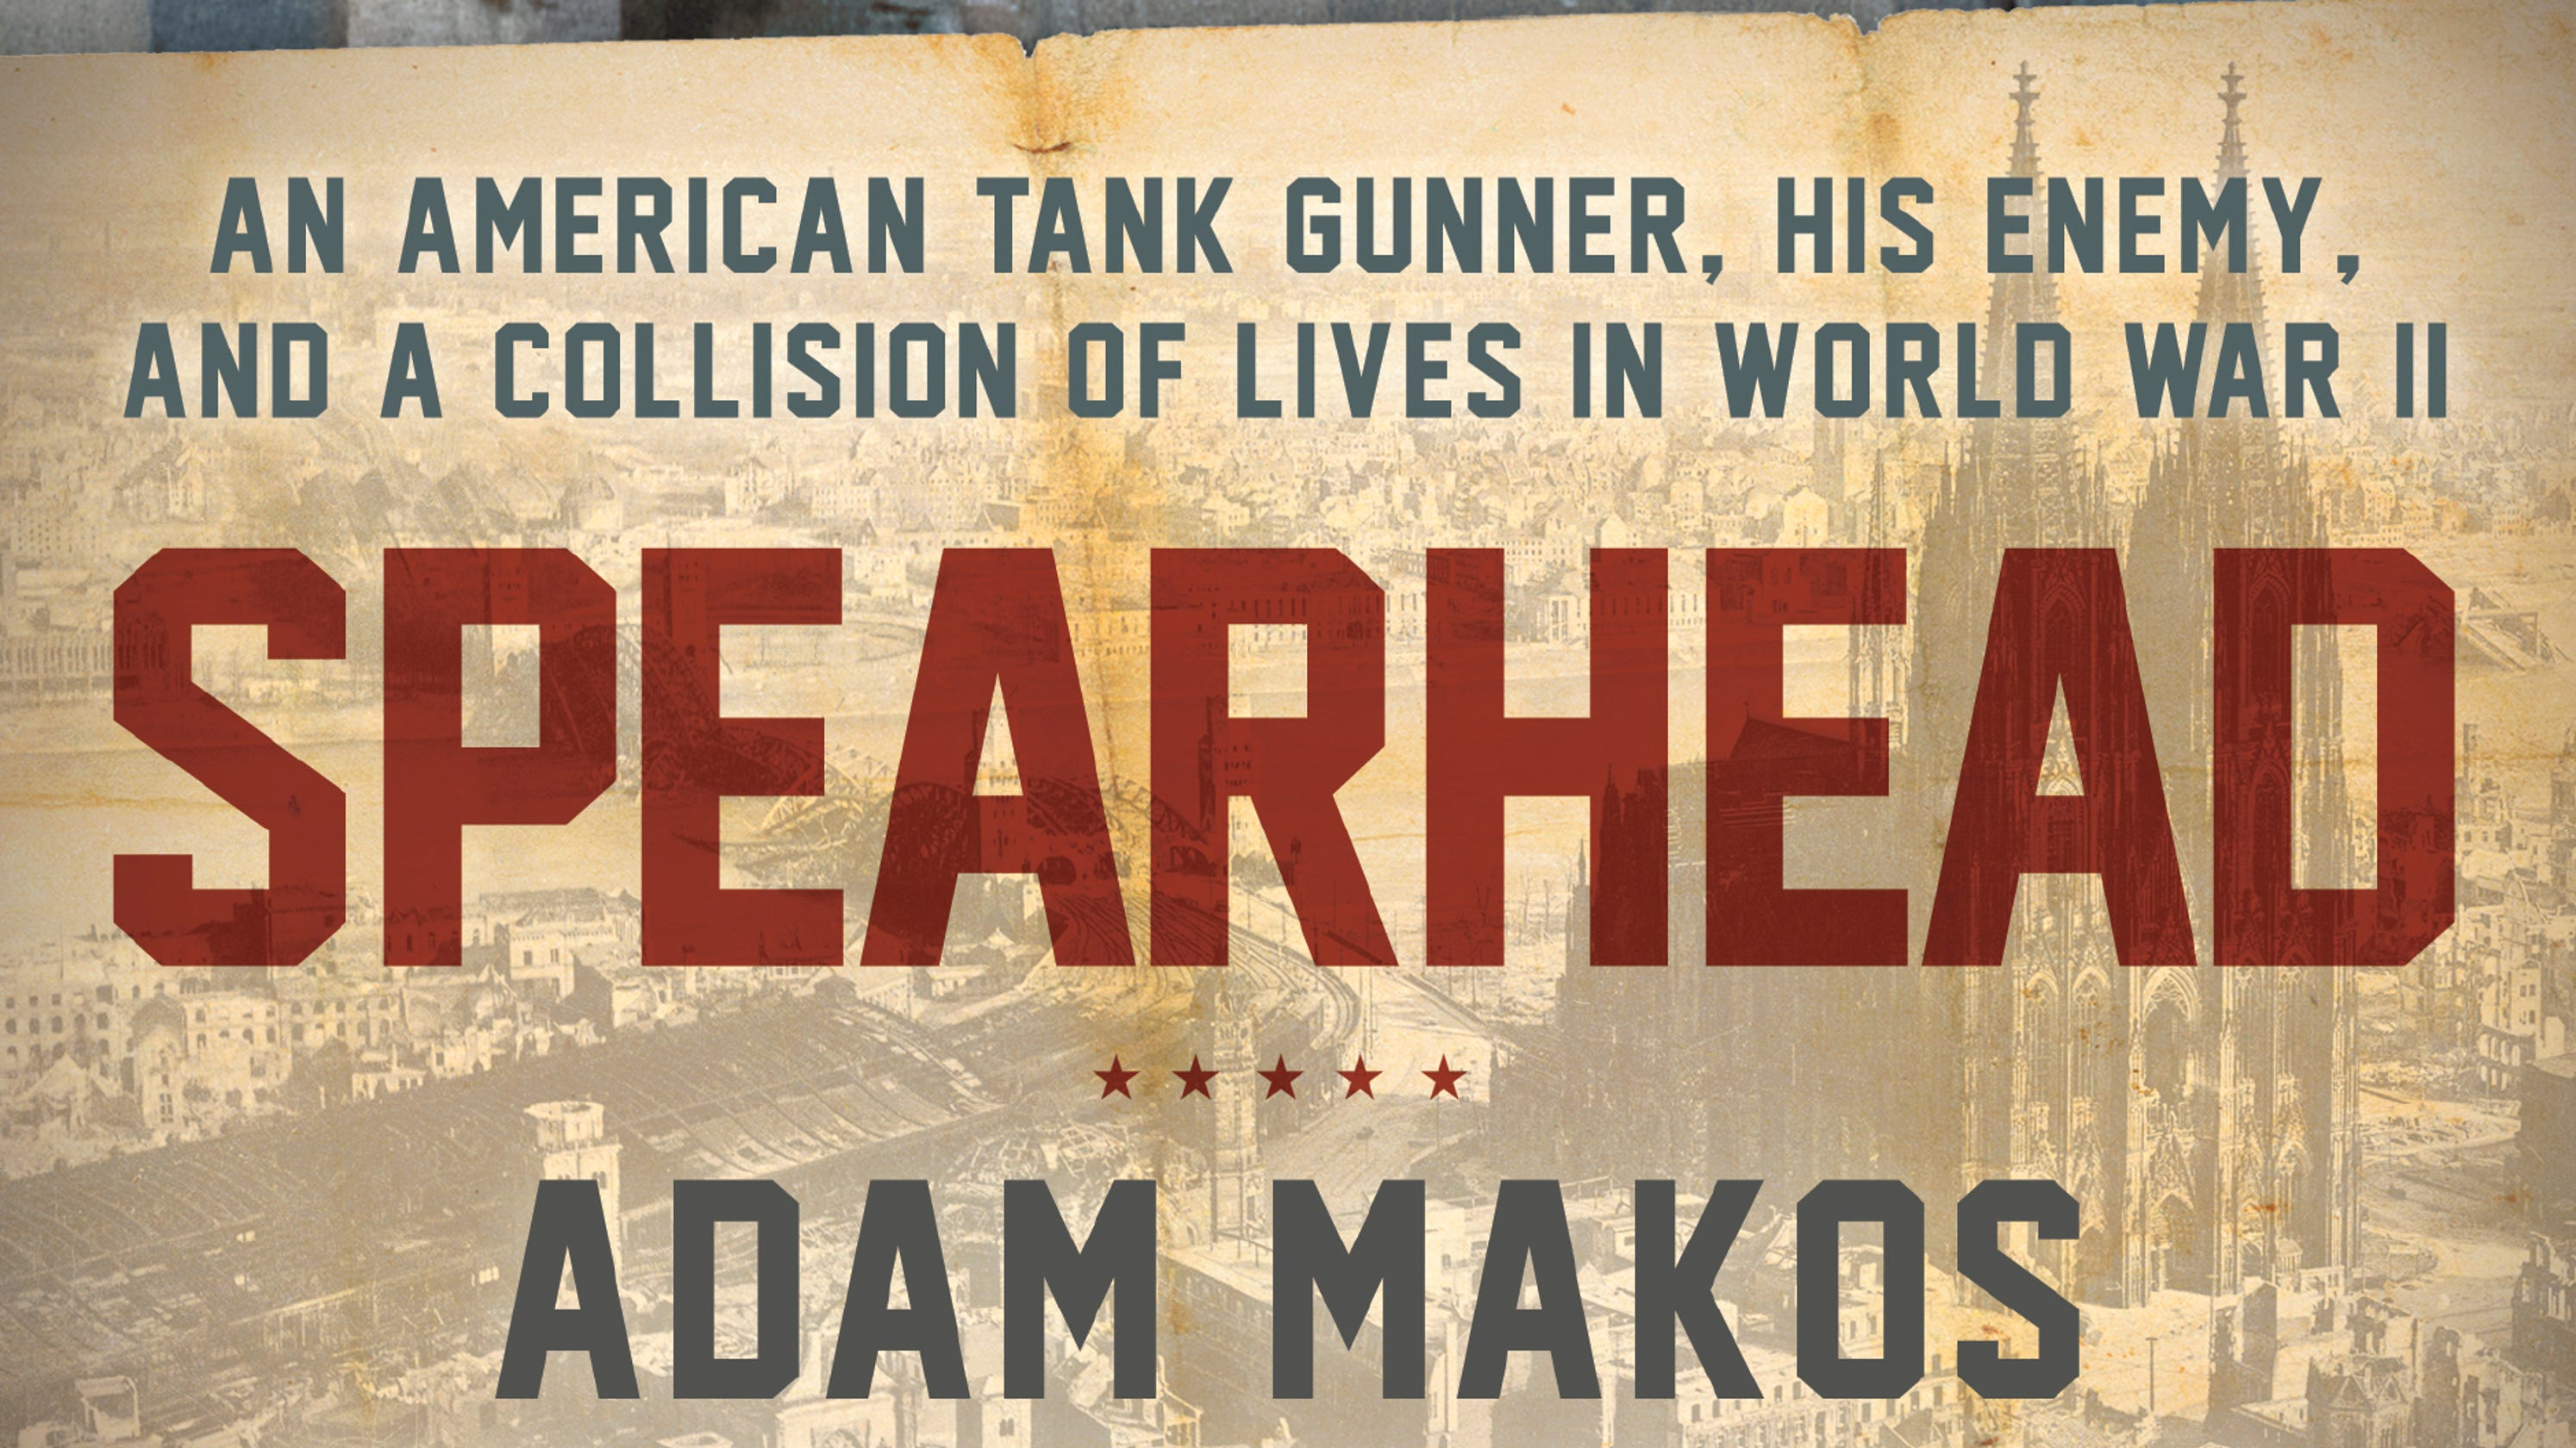 Spearhead' is a WWII book on tank strategy, but humanity is